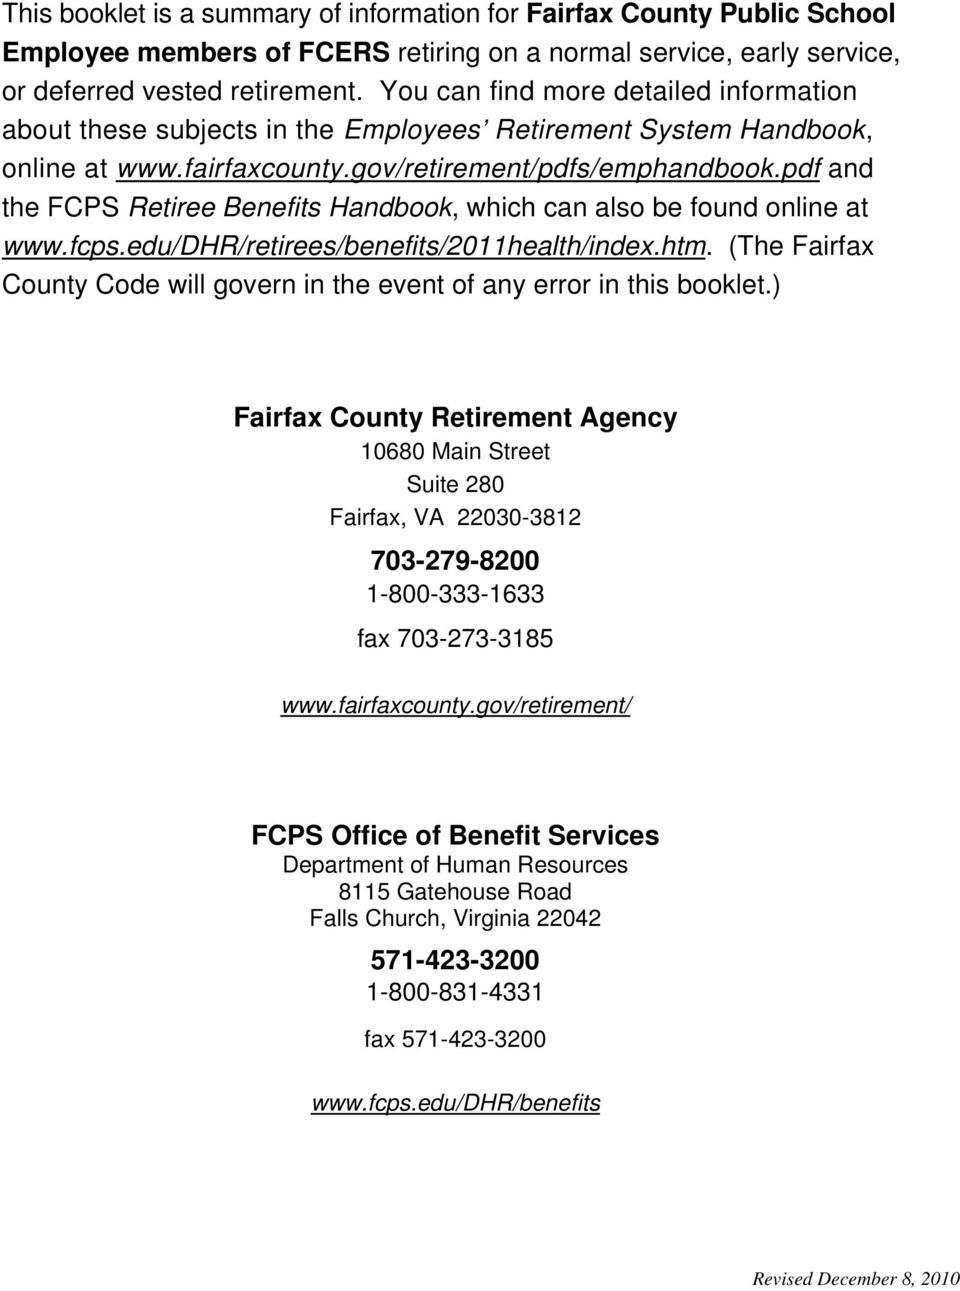 pdf and the FCPS Retiree Benefits Handbook, which can also be found online at www.fcps.edu/dhr/retirees/benefits/2011health/index.htm.